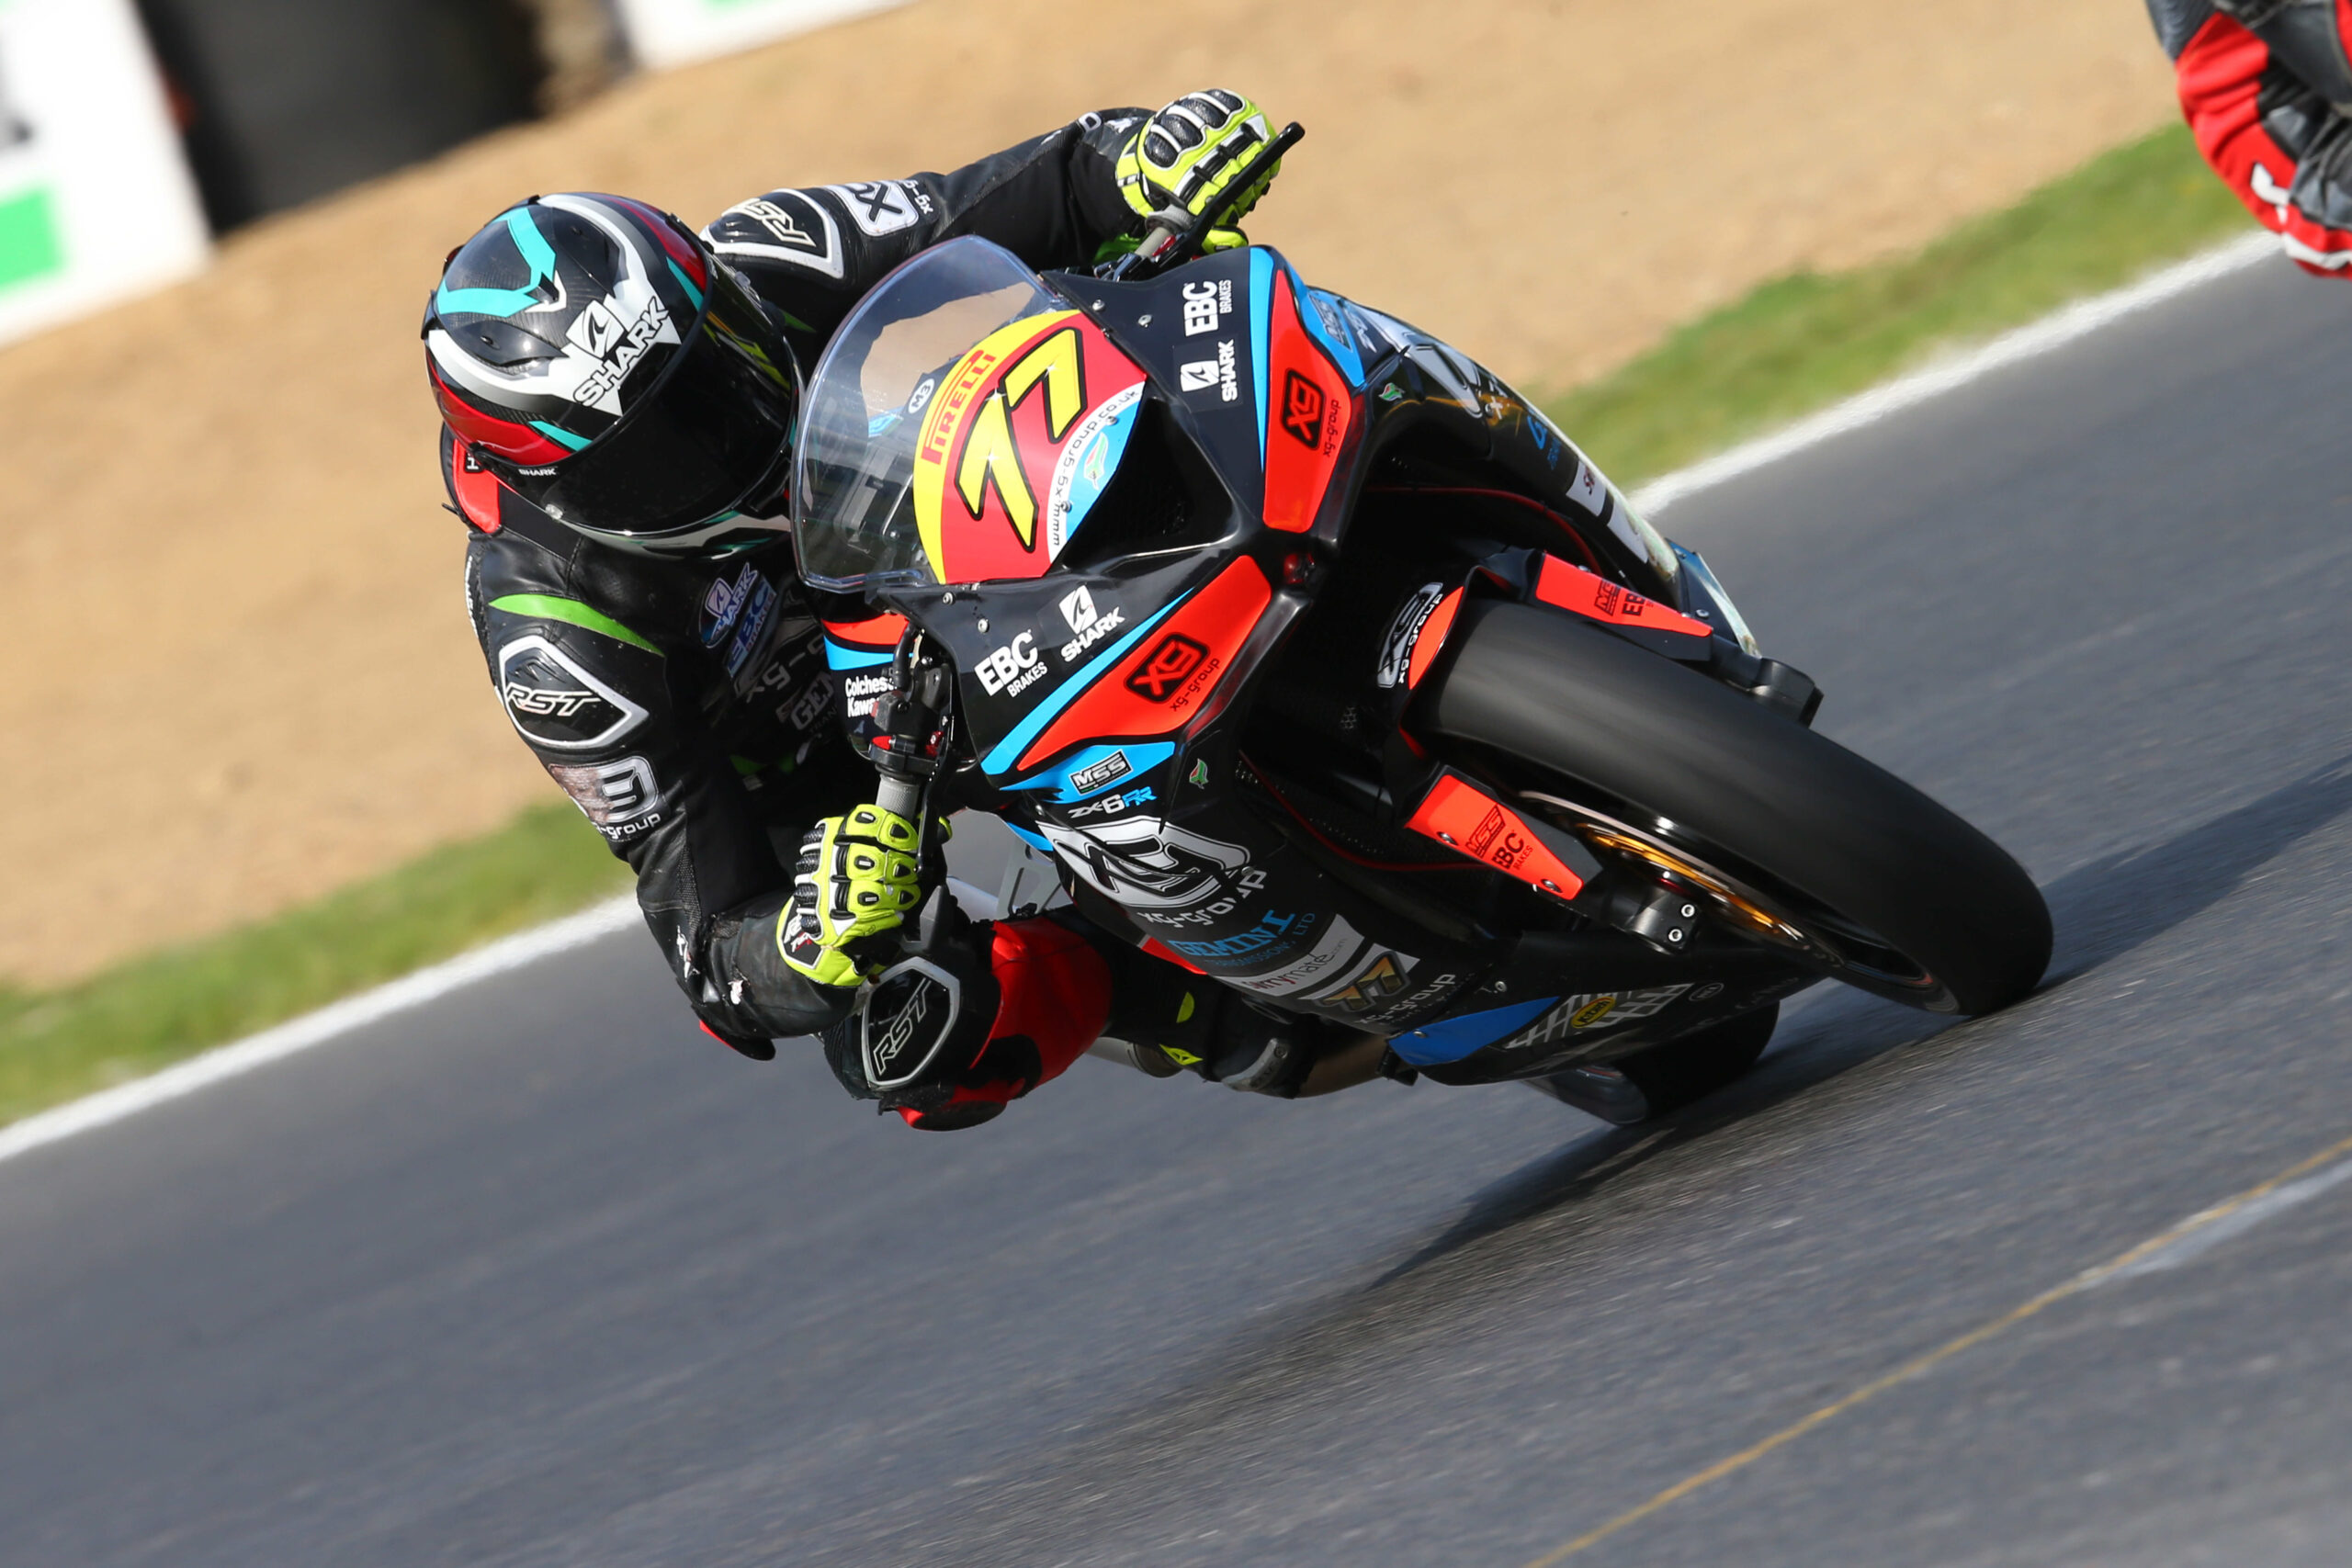 KADE VERWEY HAPPY WITH STRONG PACE AT BRANDS HATCH